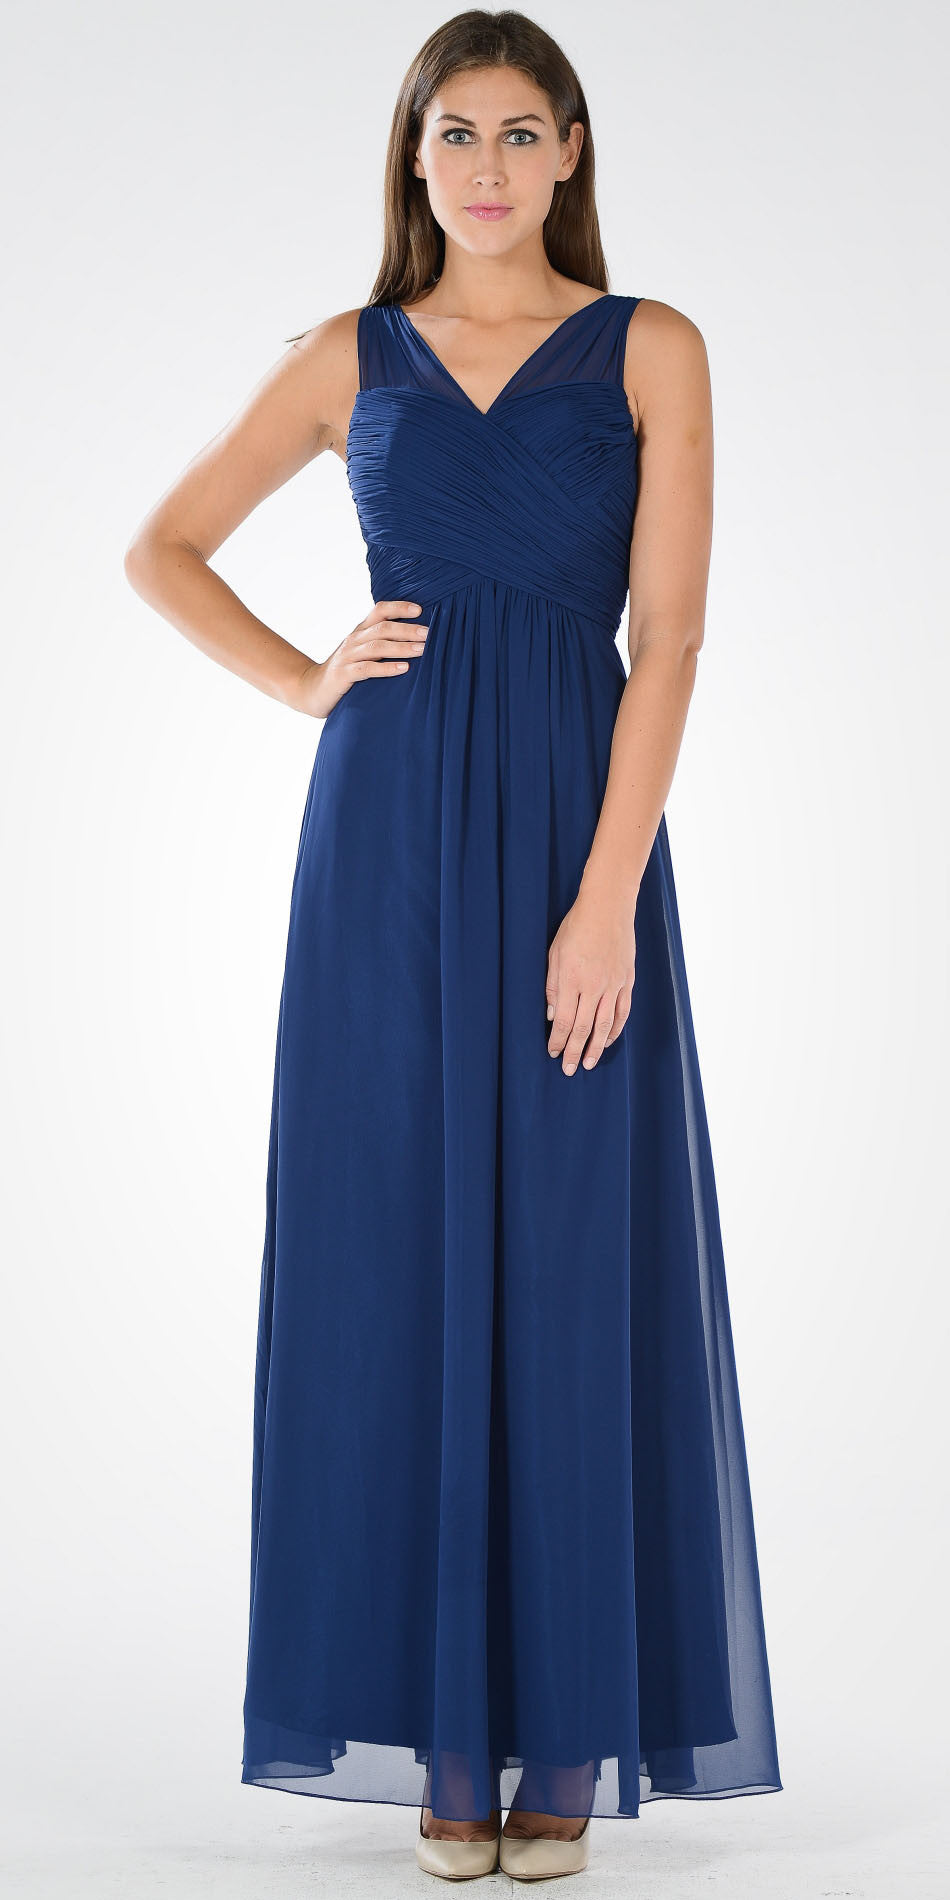 769284a6b63f Navy Blue V-Neck Ruched Bodice Empire Waist Chiffon Long Bridesmaids Dress.  Tap to expand